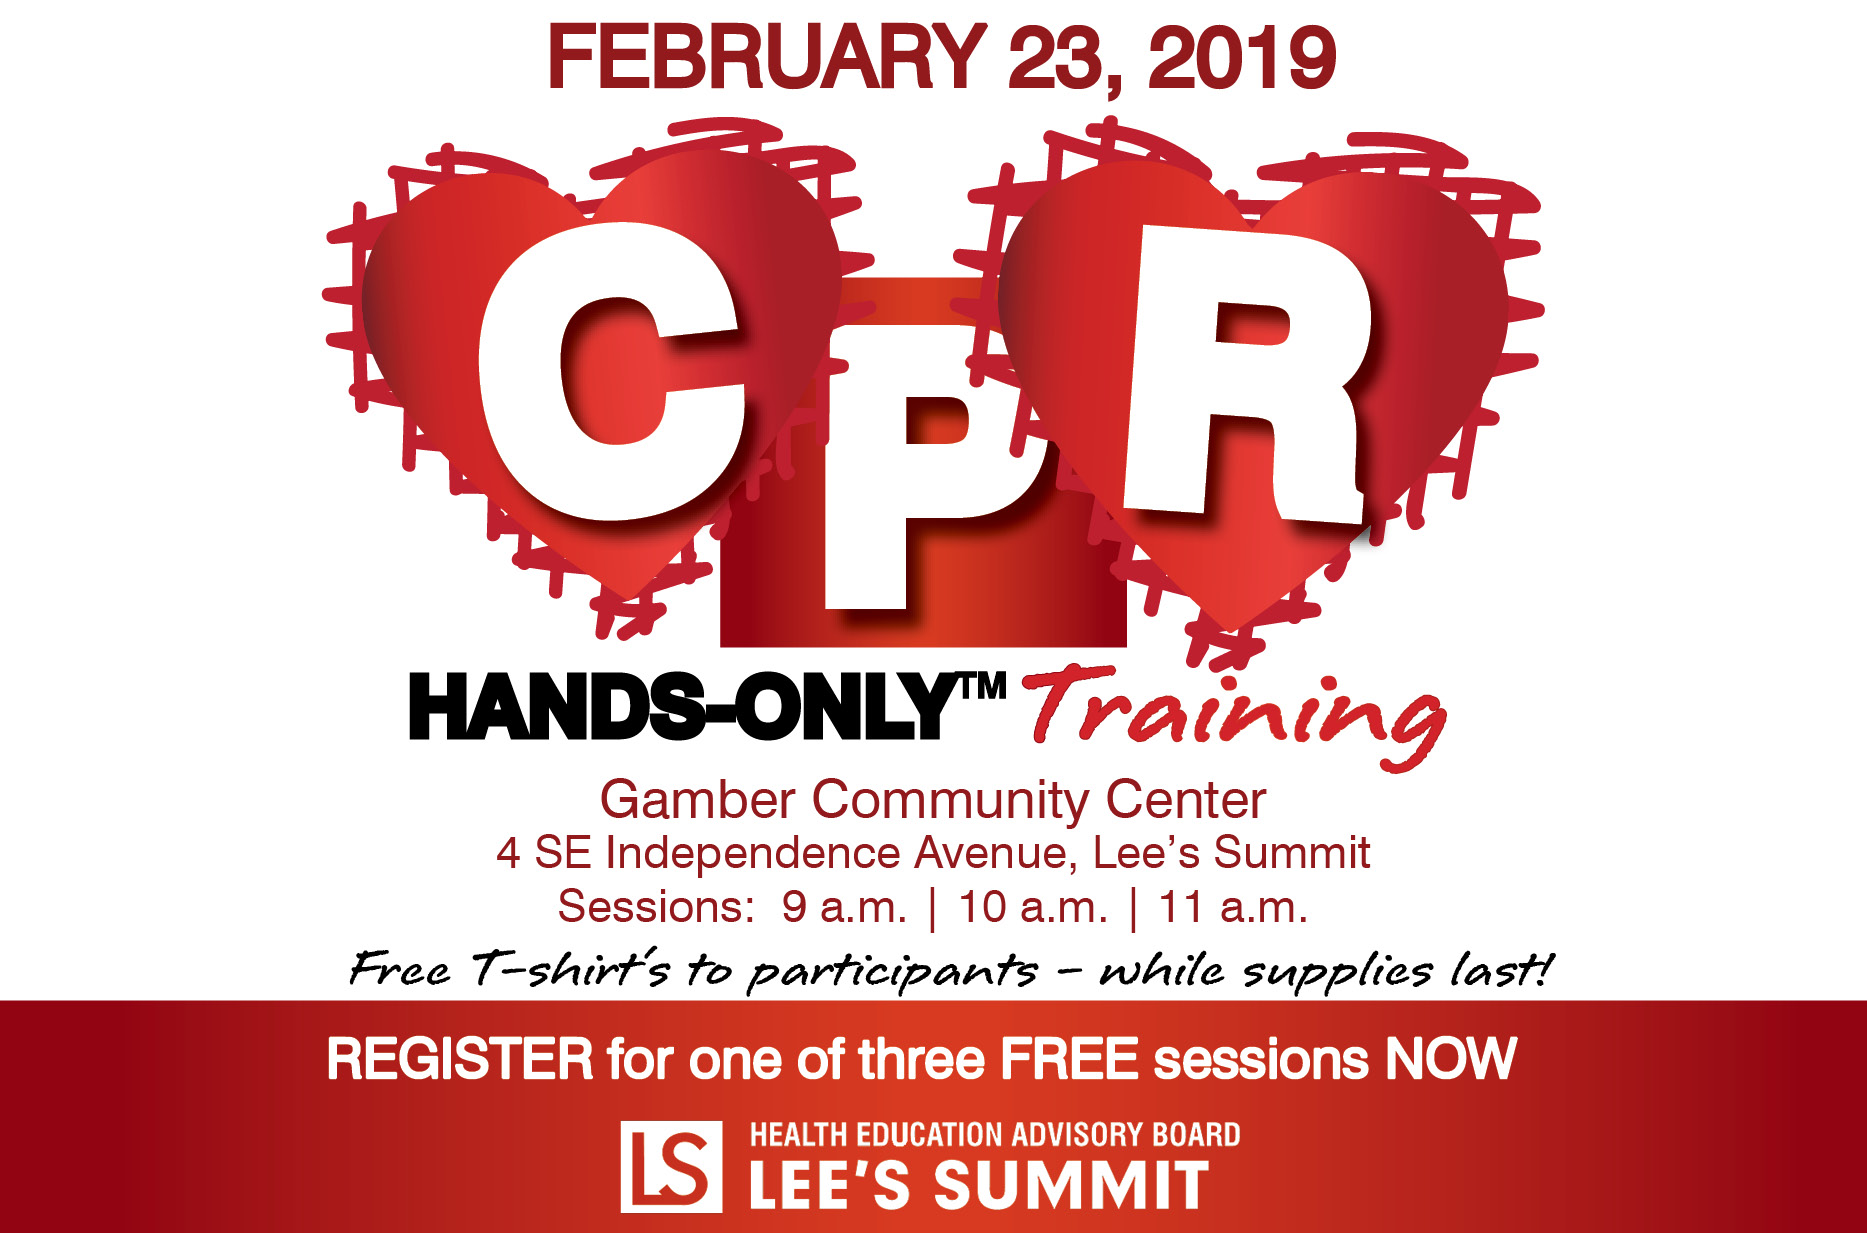 CPR Hands-Only Training Feb. 23